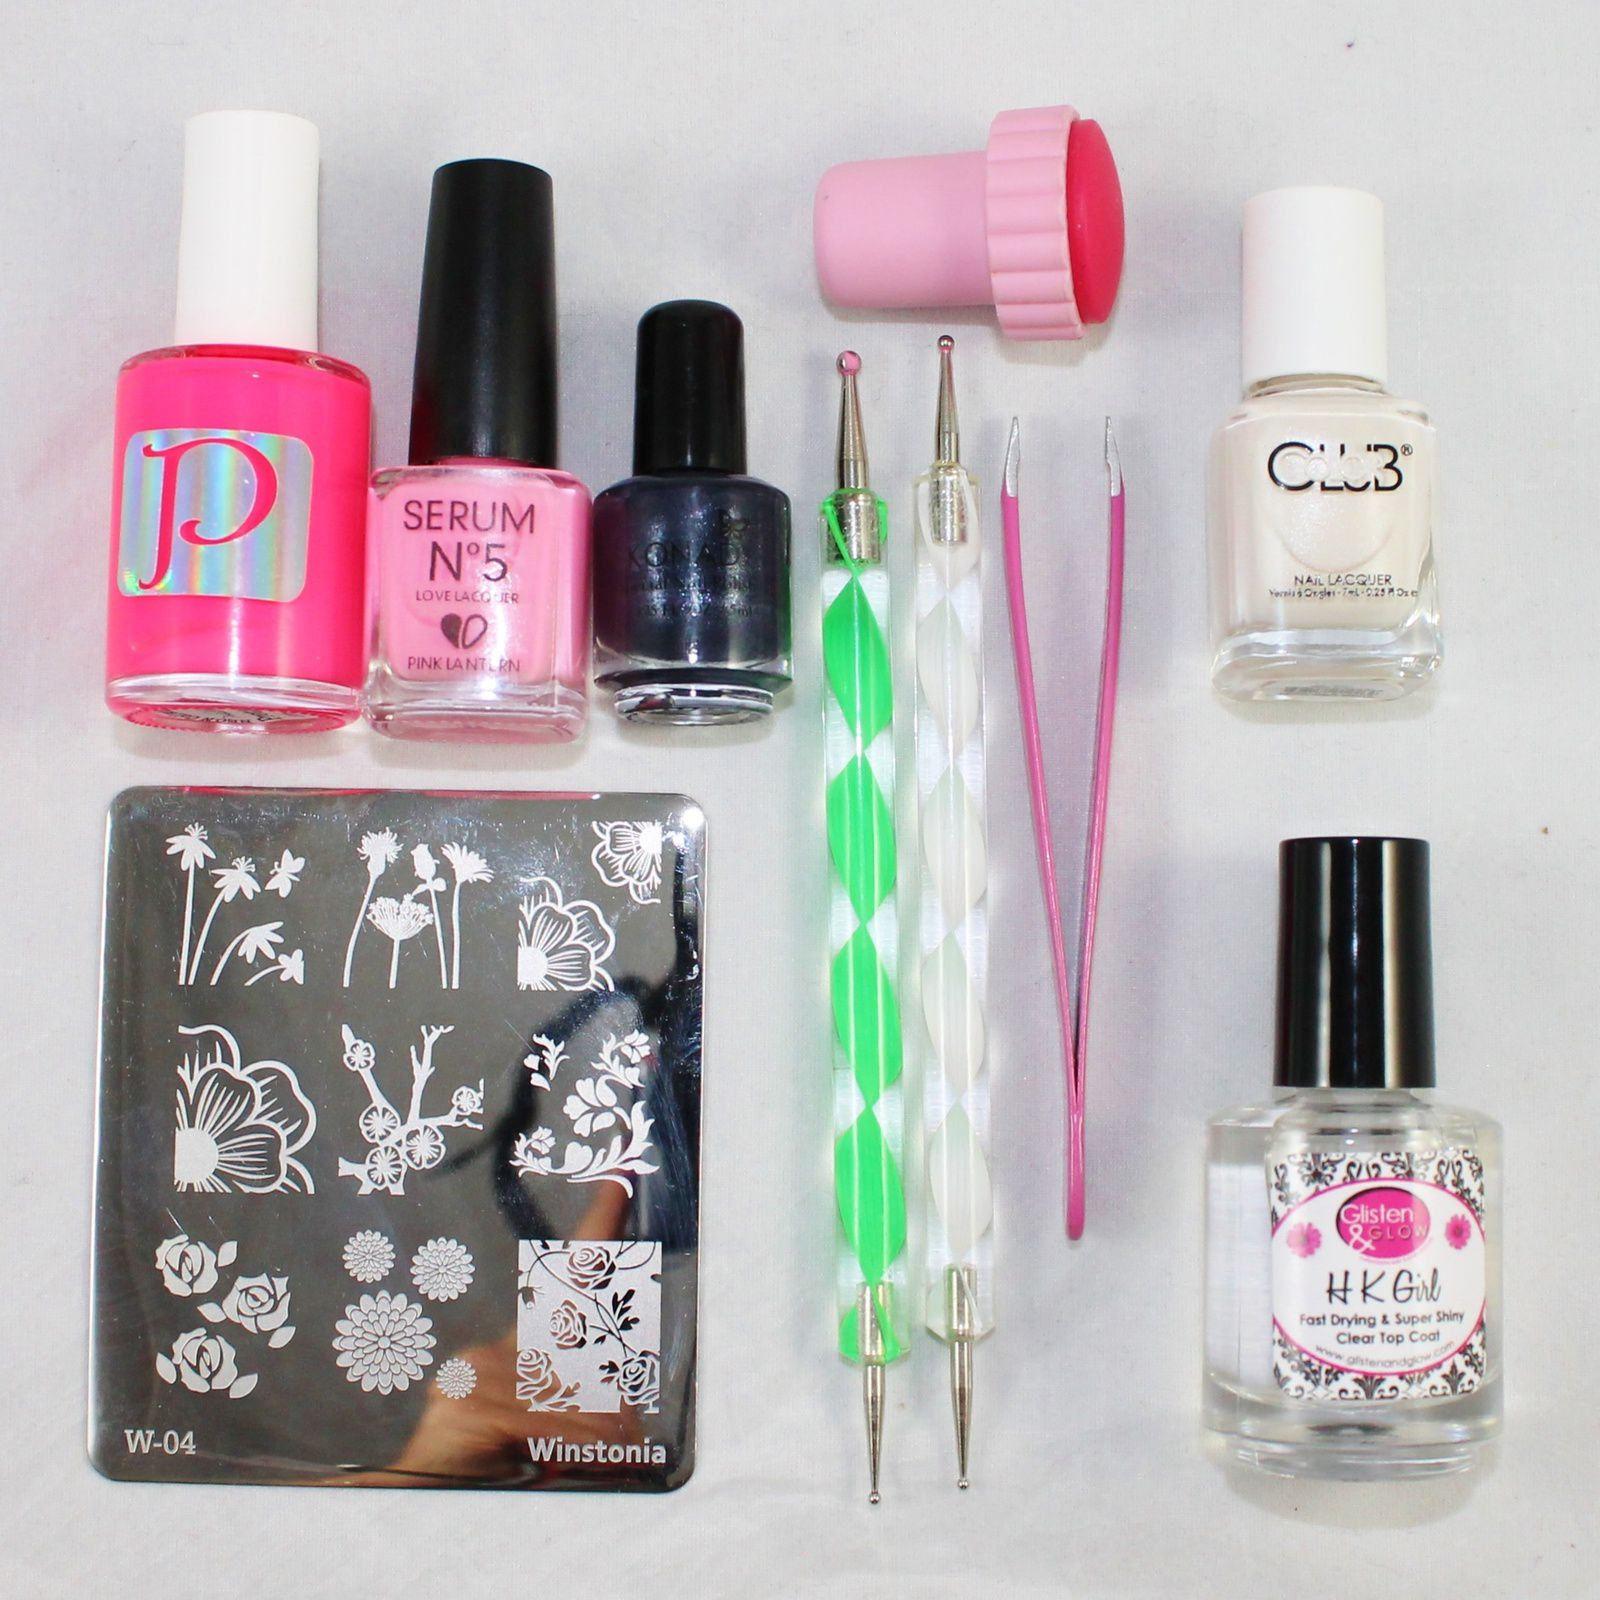 What you need: a stamping plate, a stamper (or more than one if you have more), a stamping polish, some polish and dotting tools to paint the pattern, tweezers, a base polish and a top coat that does not smear.